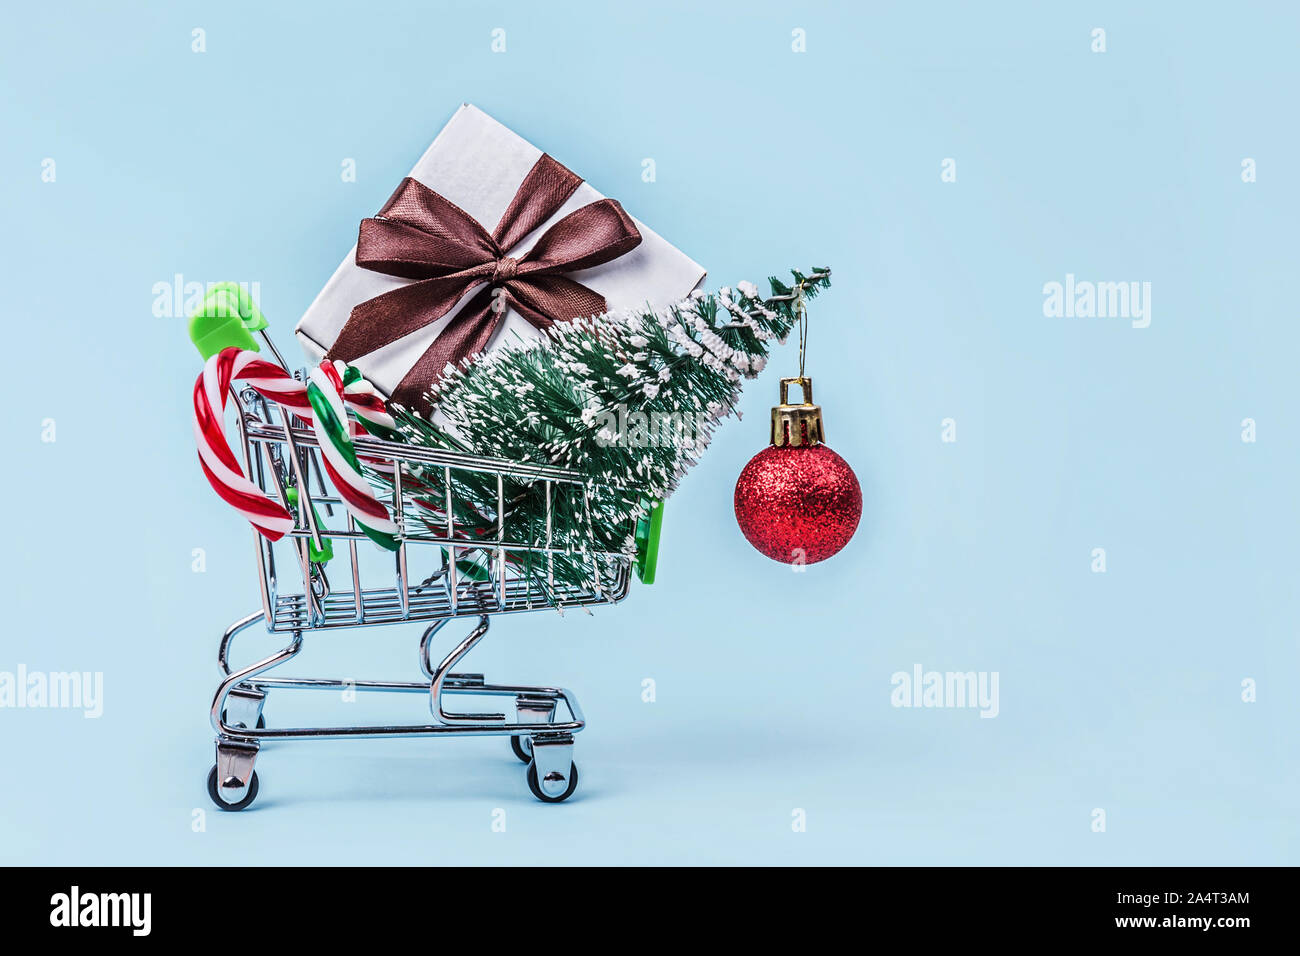 Christmas Tree Gift Box And Candy Canes In Miniature Shopping Cart With On Pastel Blue Background With Copy Space Stock Photo Alamy